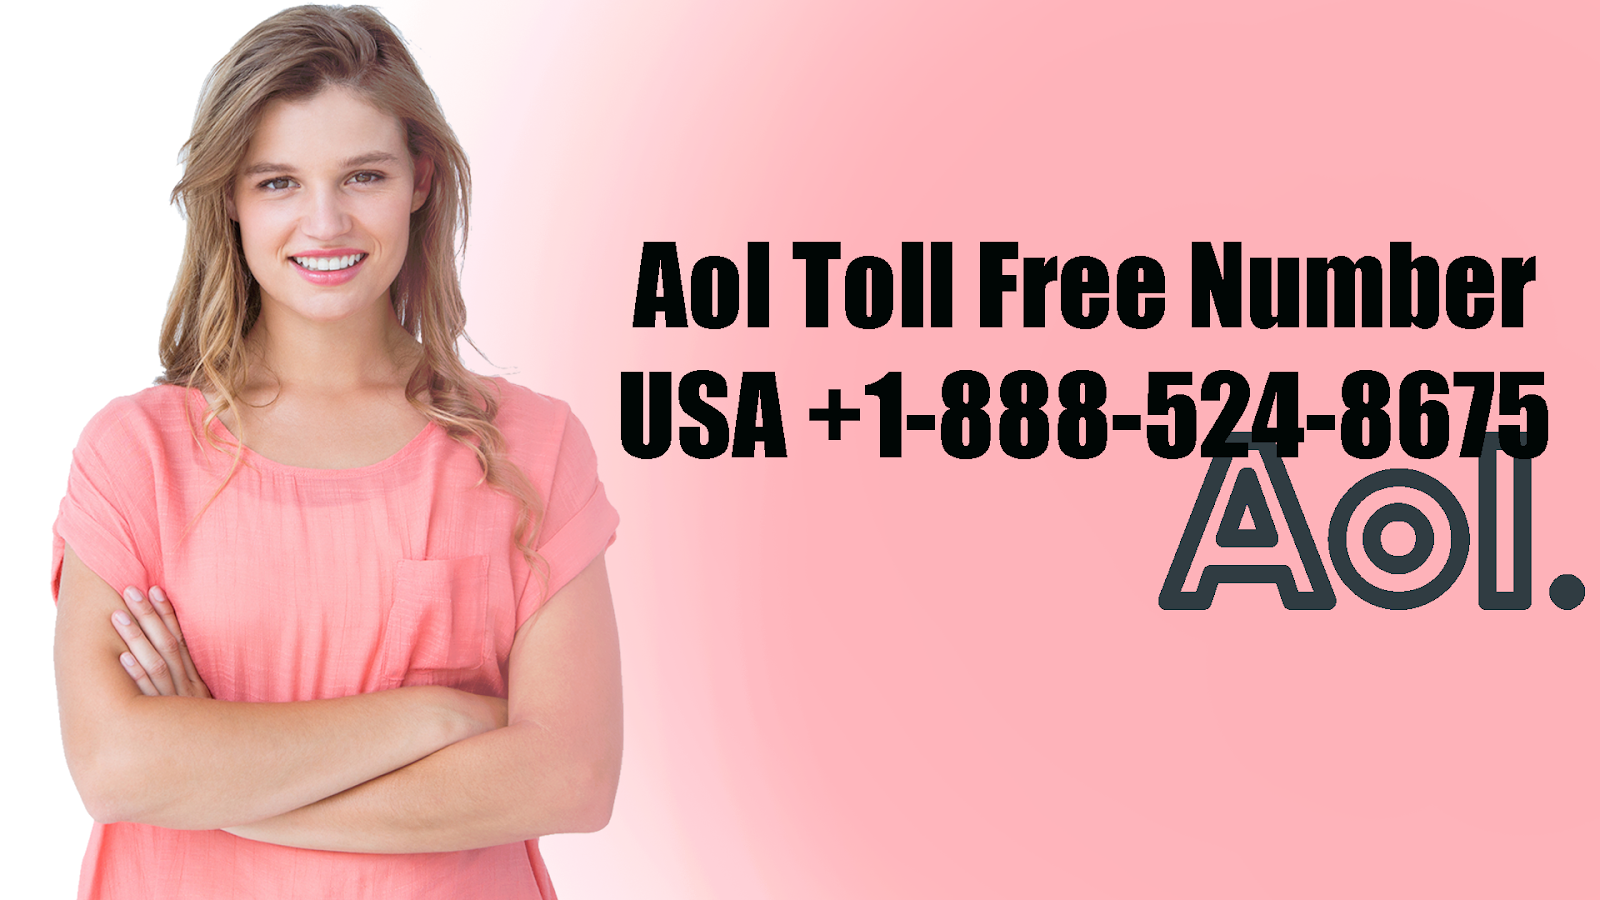 aol customer service number 1888-524-8675